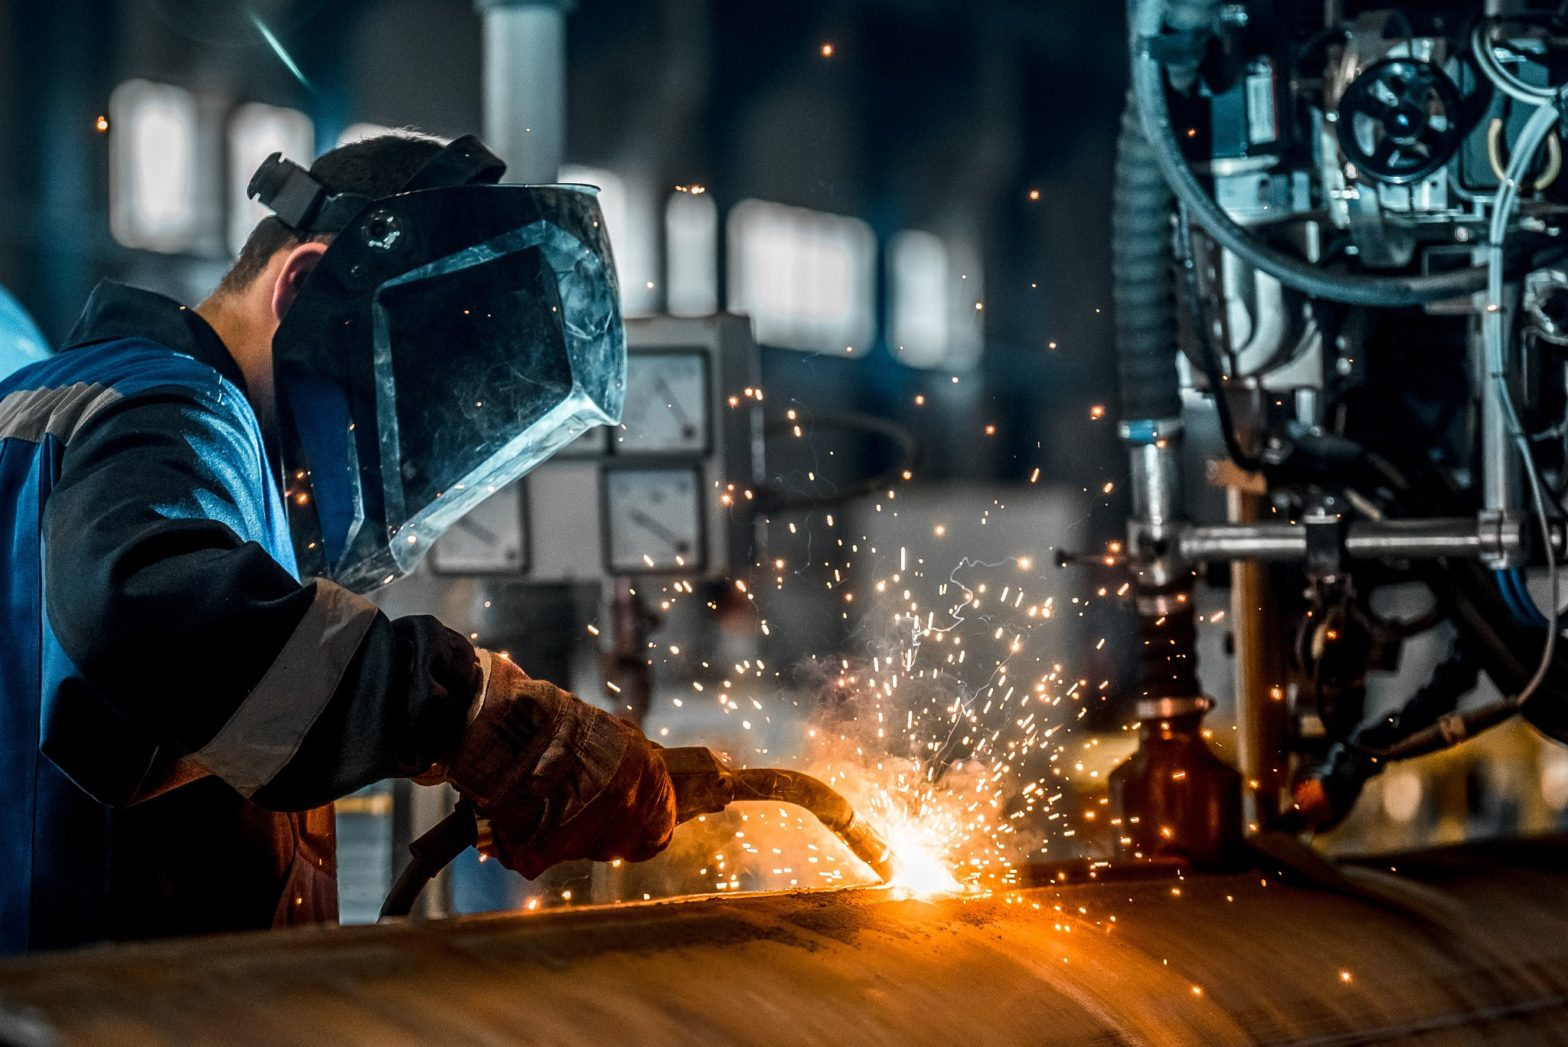 sparks fly during metal work